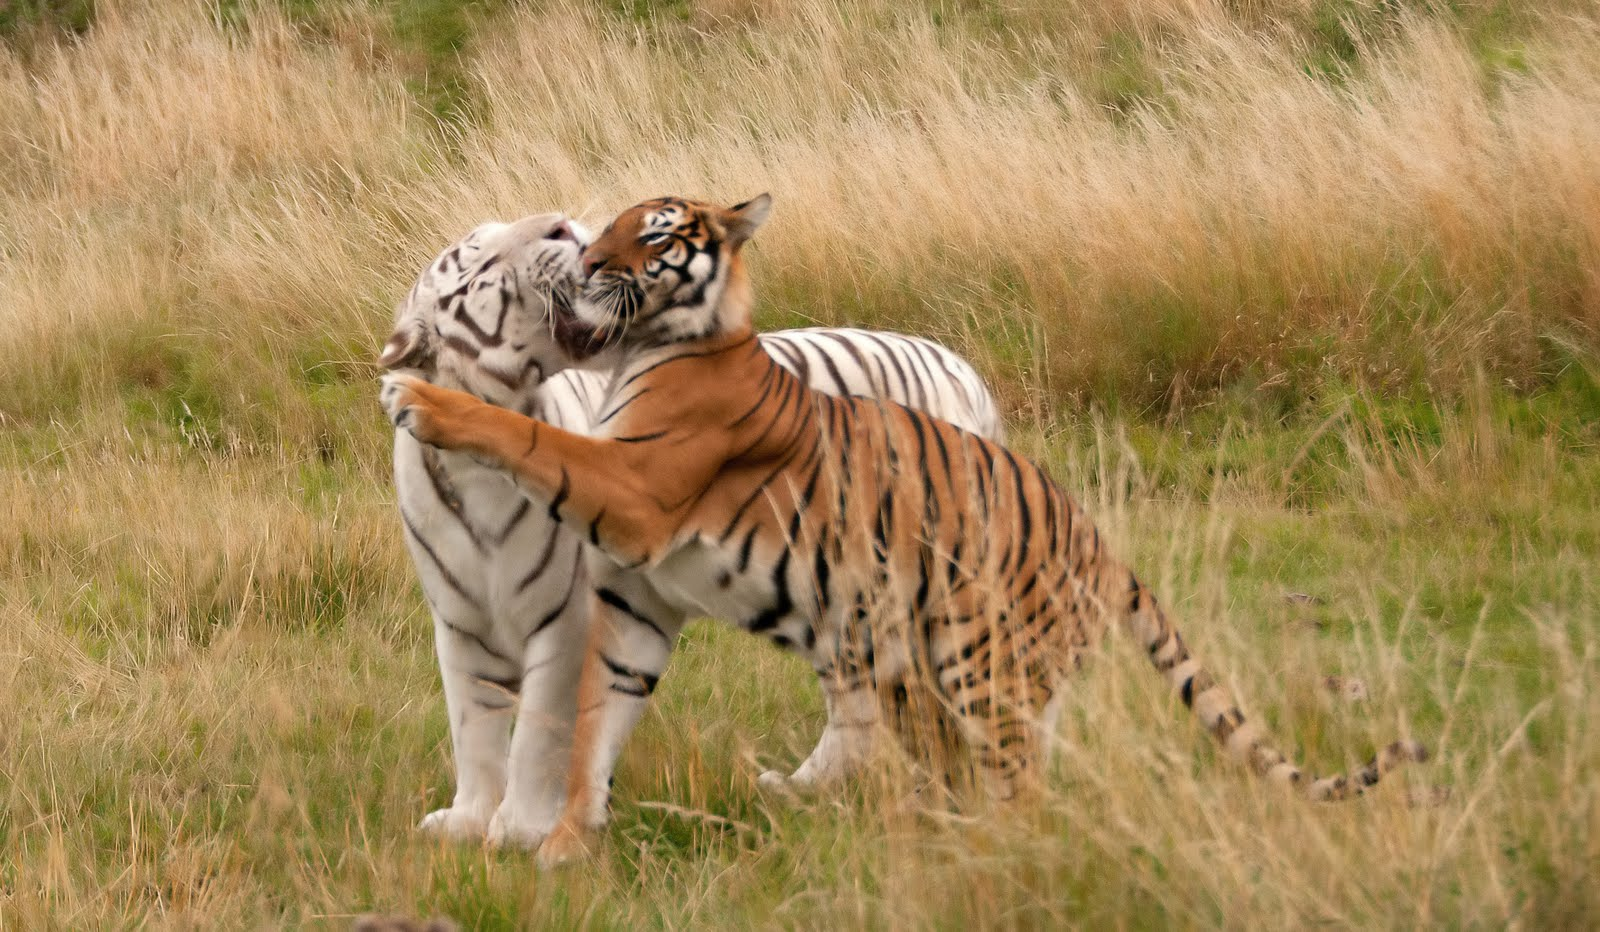 Anthony Miners Wildlife Photos: Bengal Tigers